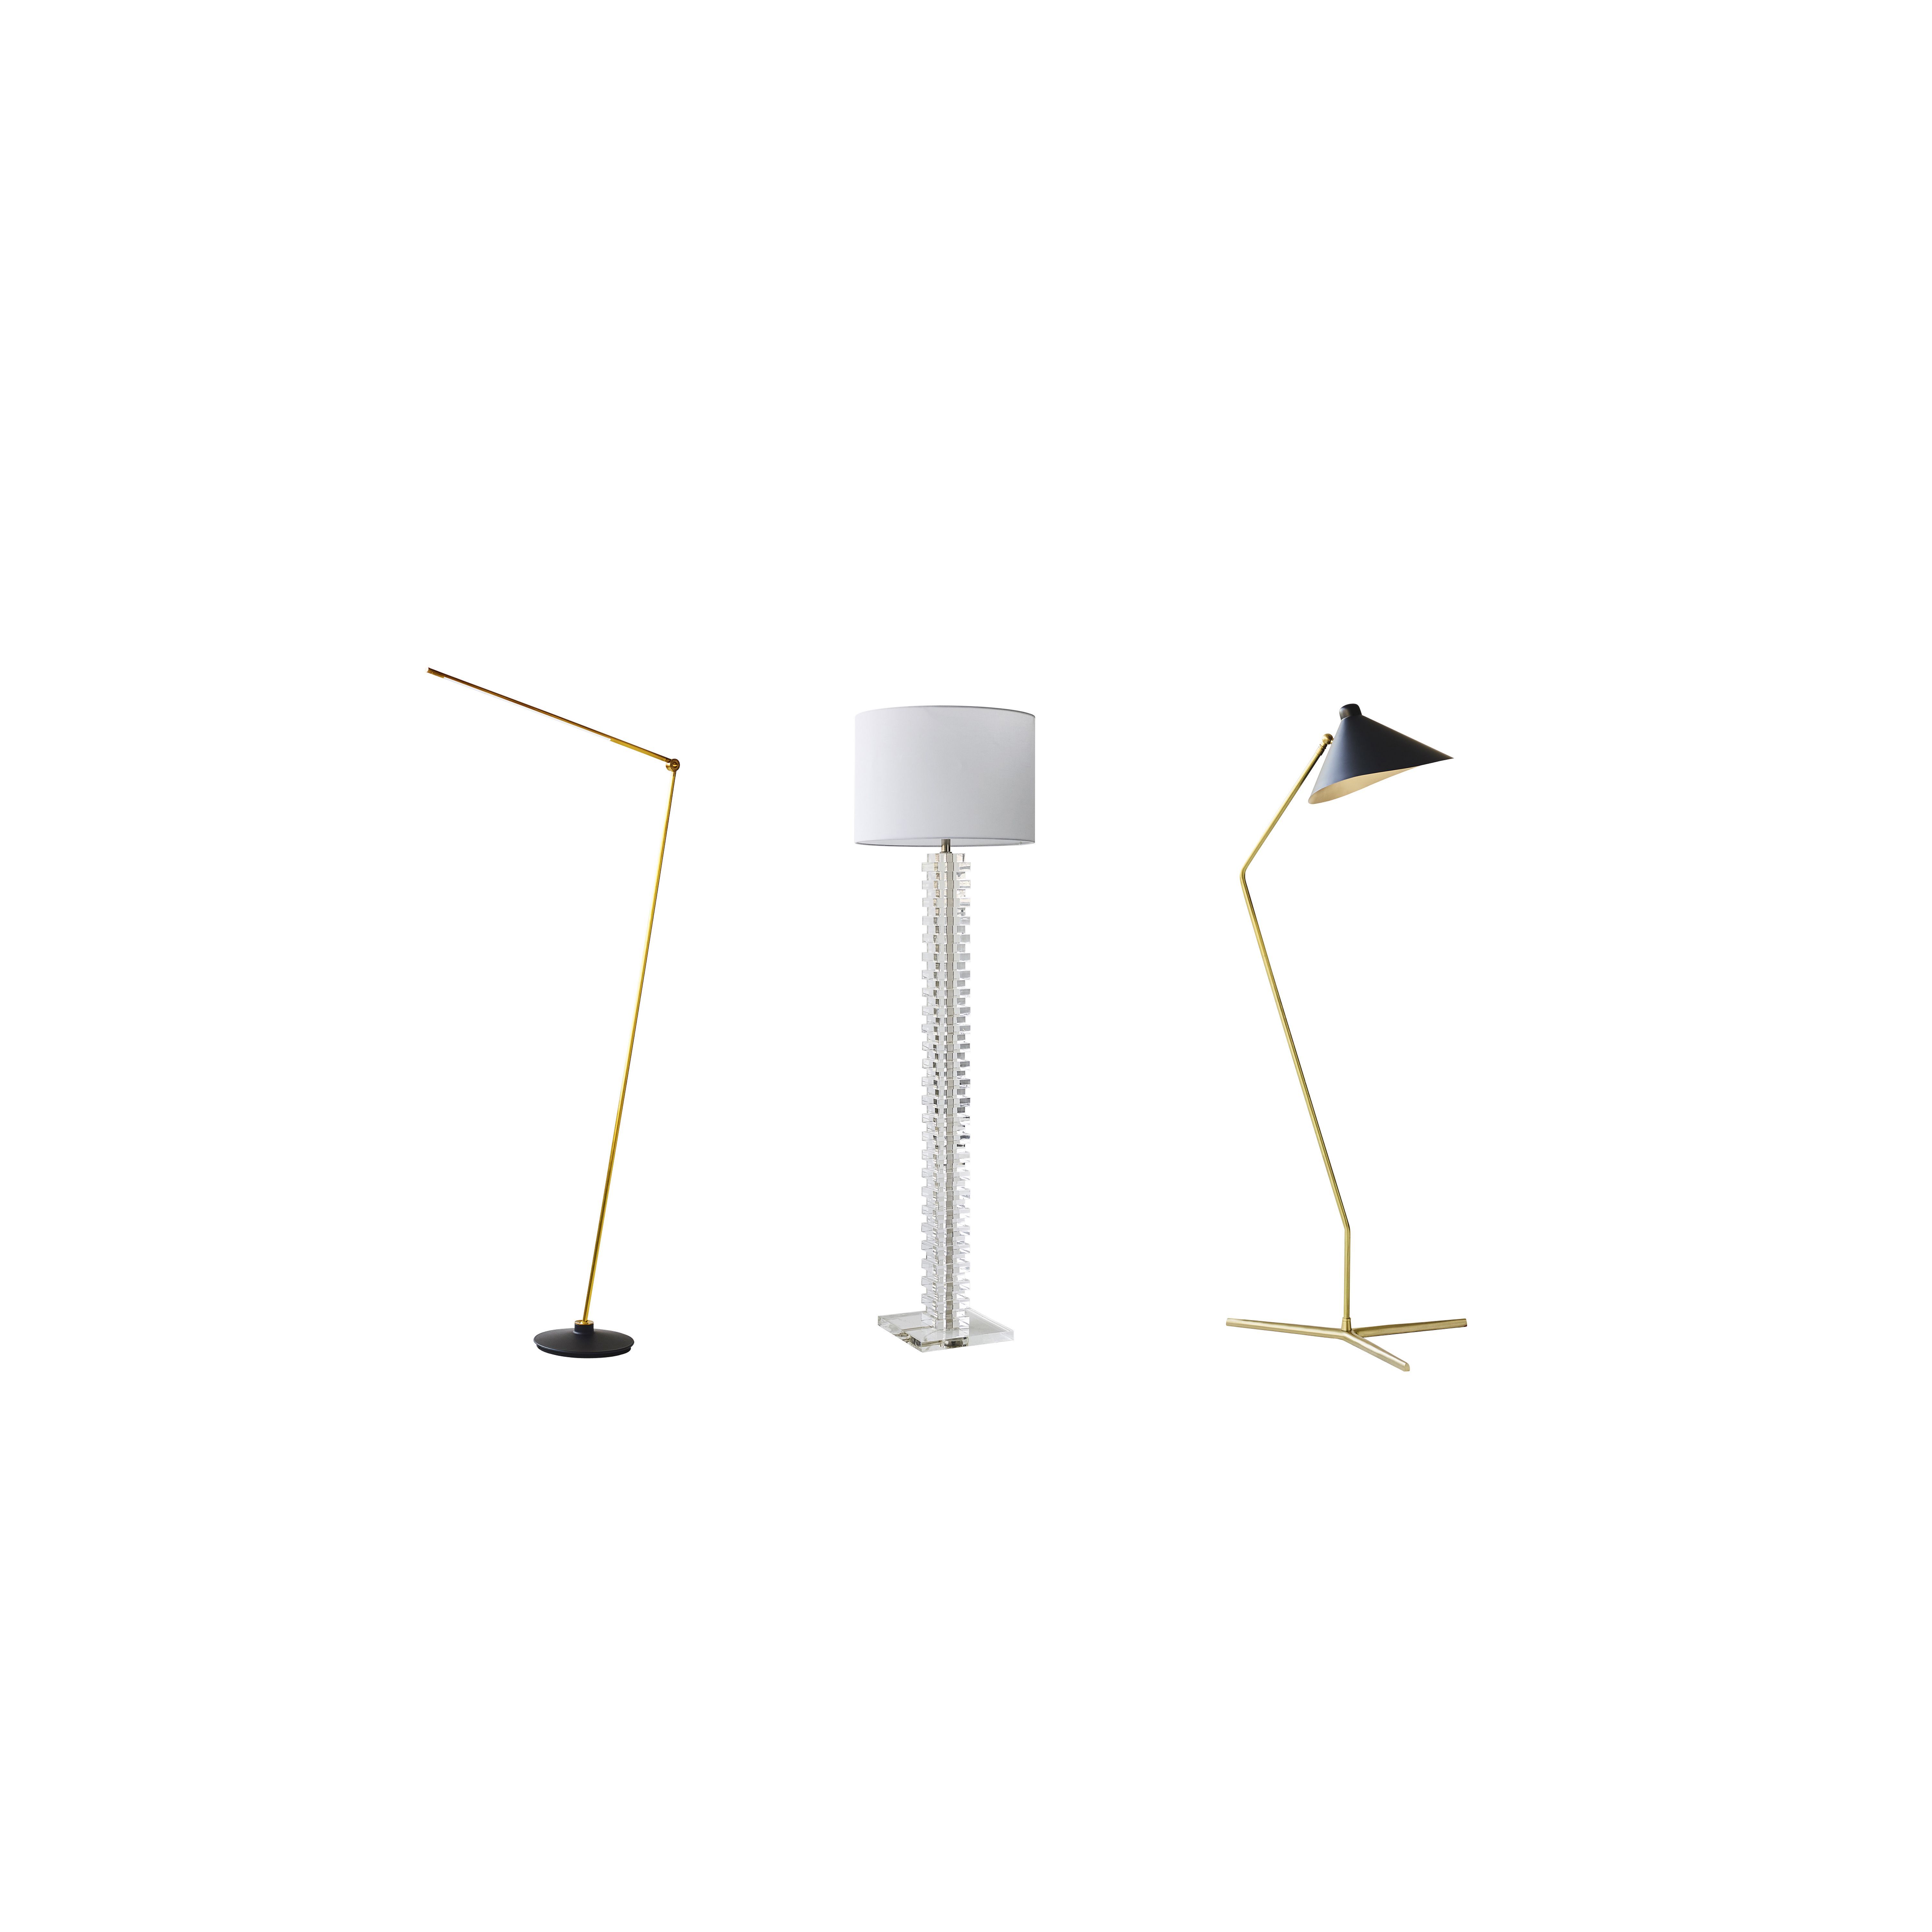 lamp tree type surrounded is provides lighting portable fixtures for extra fixture luxury that and lamps best home of floor in the area table this light it to similar pin a